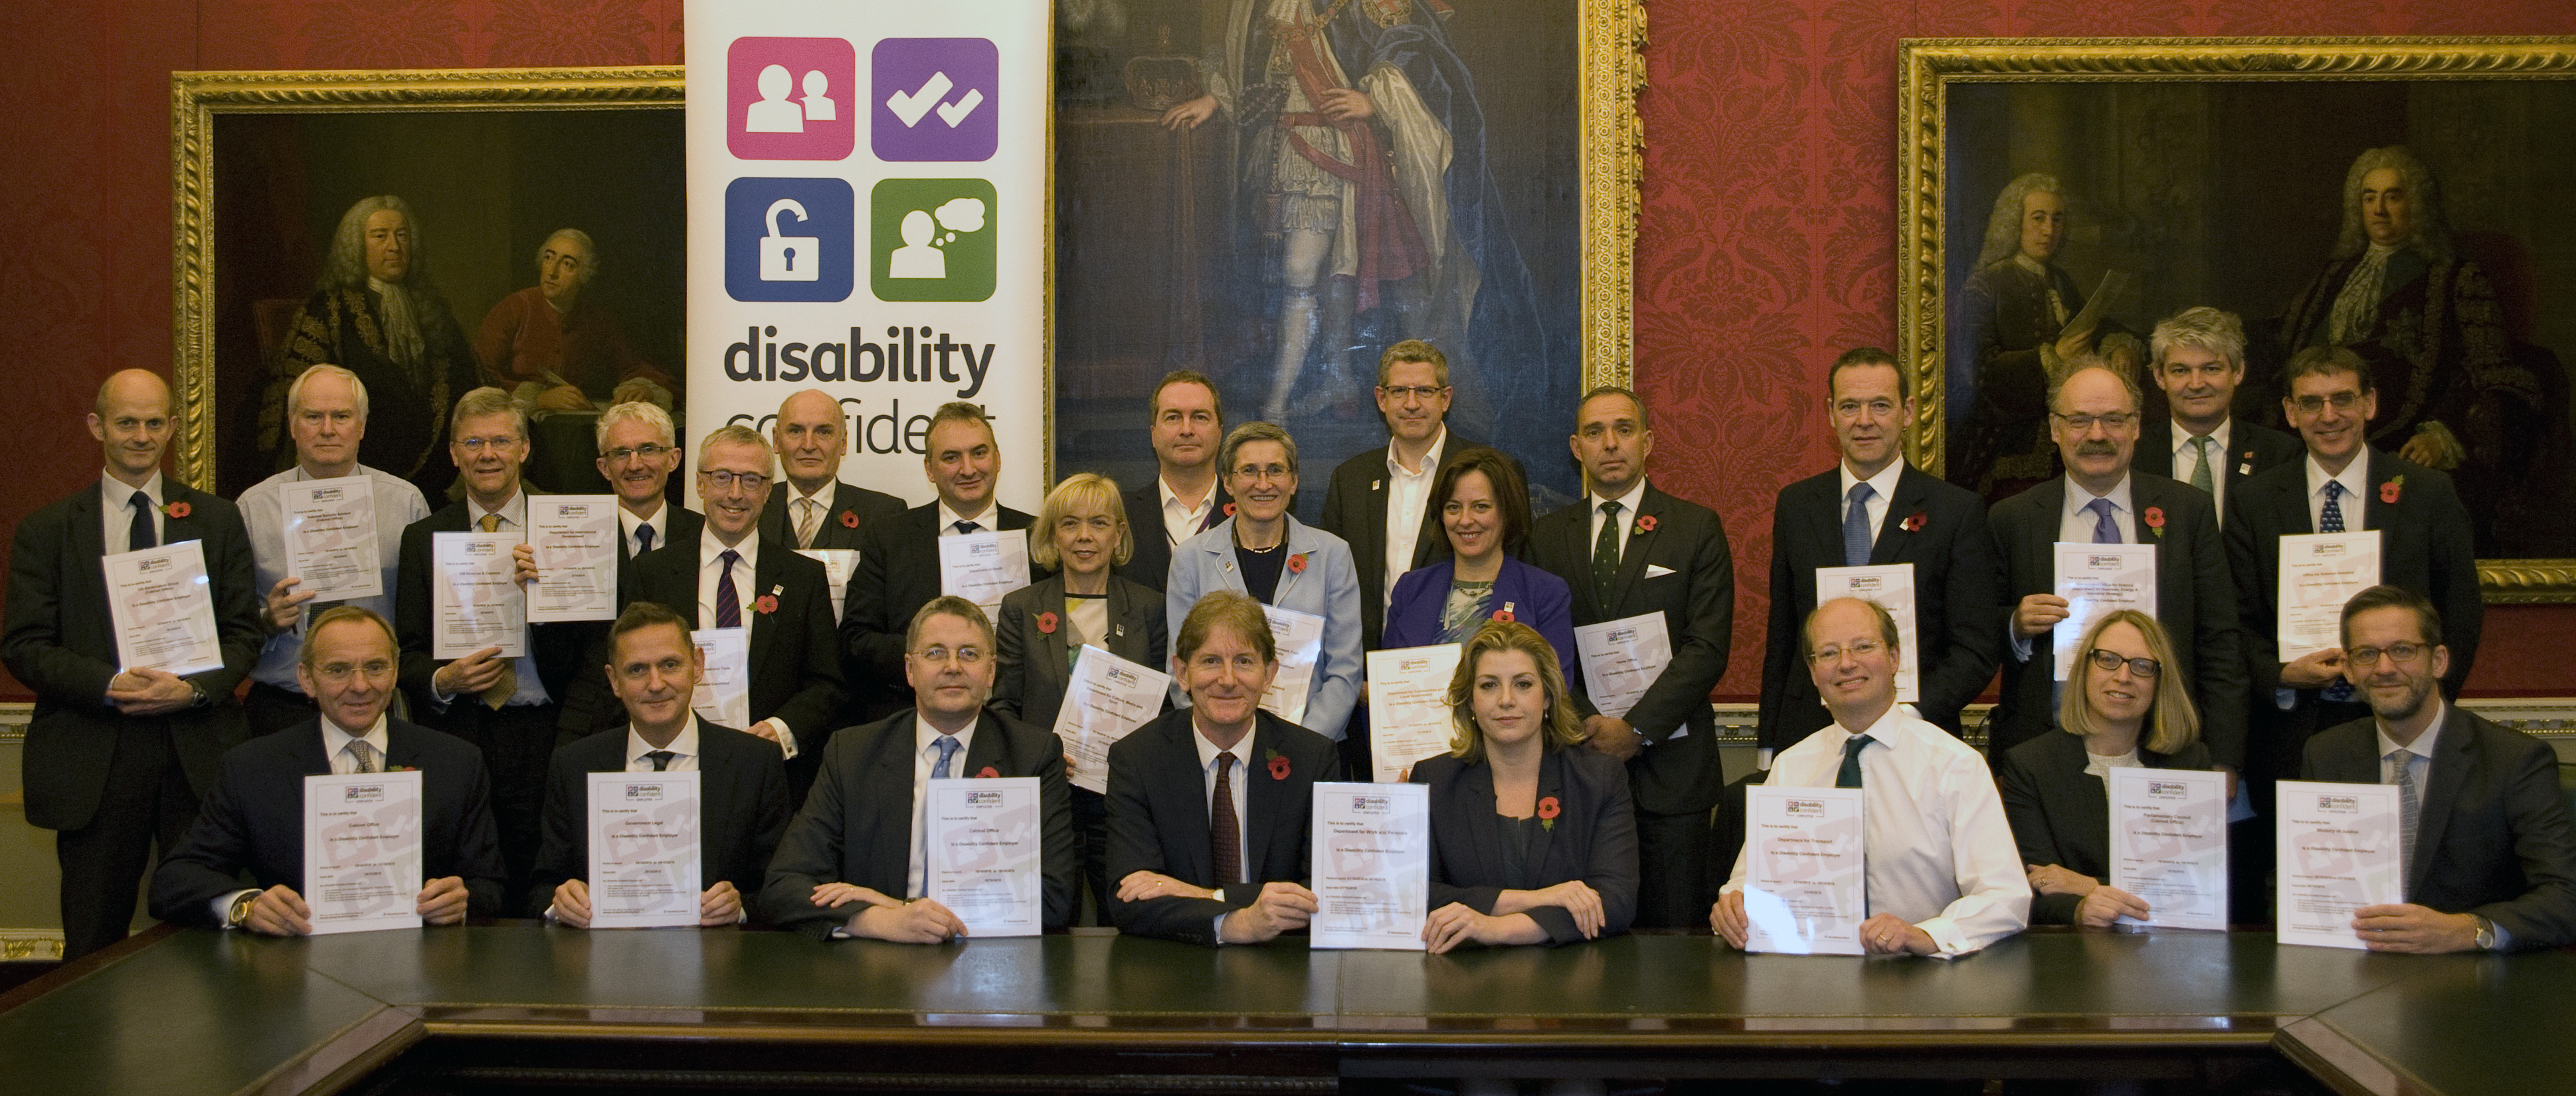 Penny Mordaunt, Minister of State for Disabled People (seated centre right) with Civil Service Permanent Secretaries, committing their departments to be Disability Confident